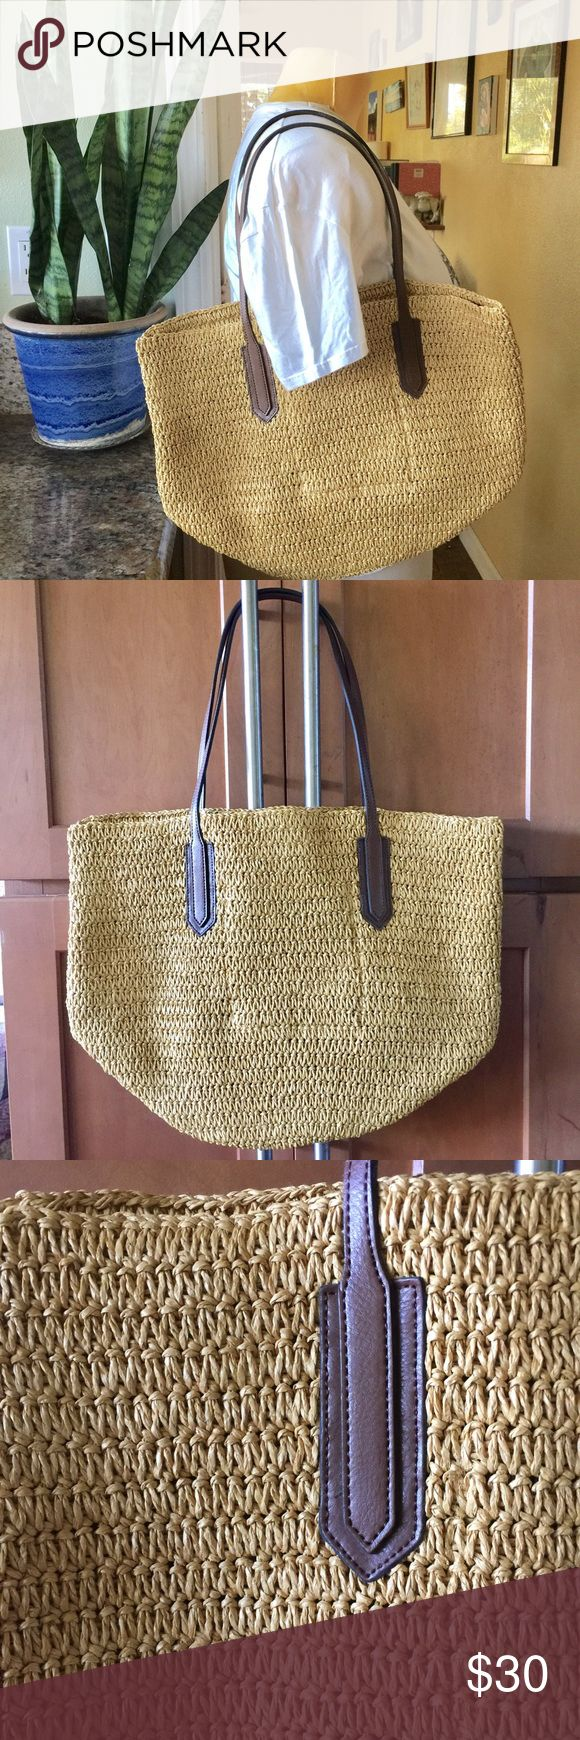 J Crew woven market tote J Crew woven tote. Perfect for everyday, farmers market, beach. NWOT. Perfect condition. J. Crew Bags Totes